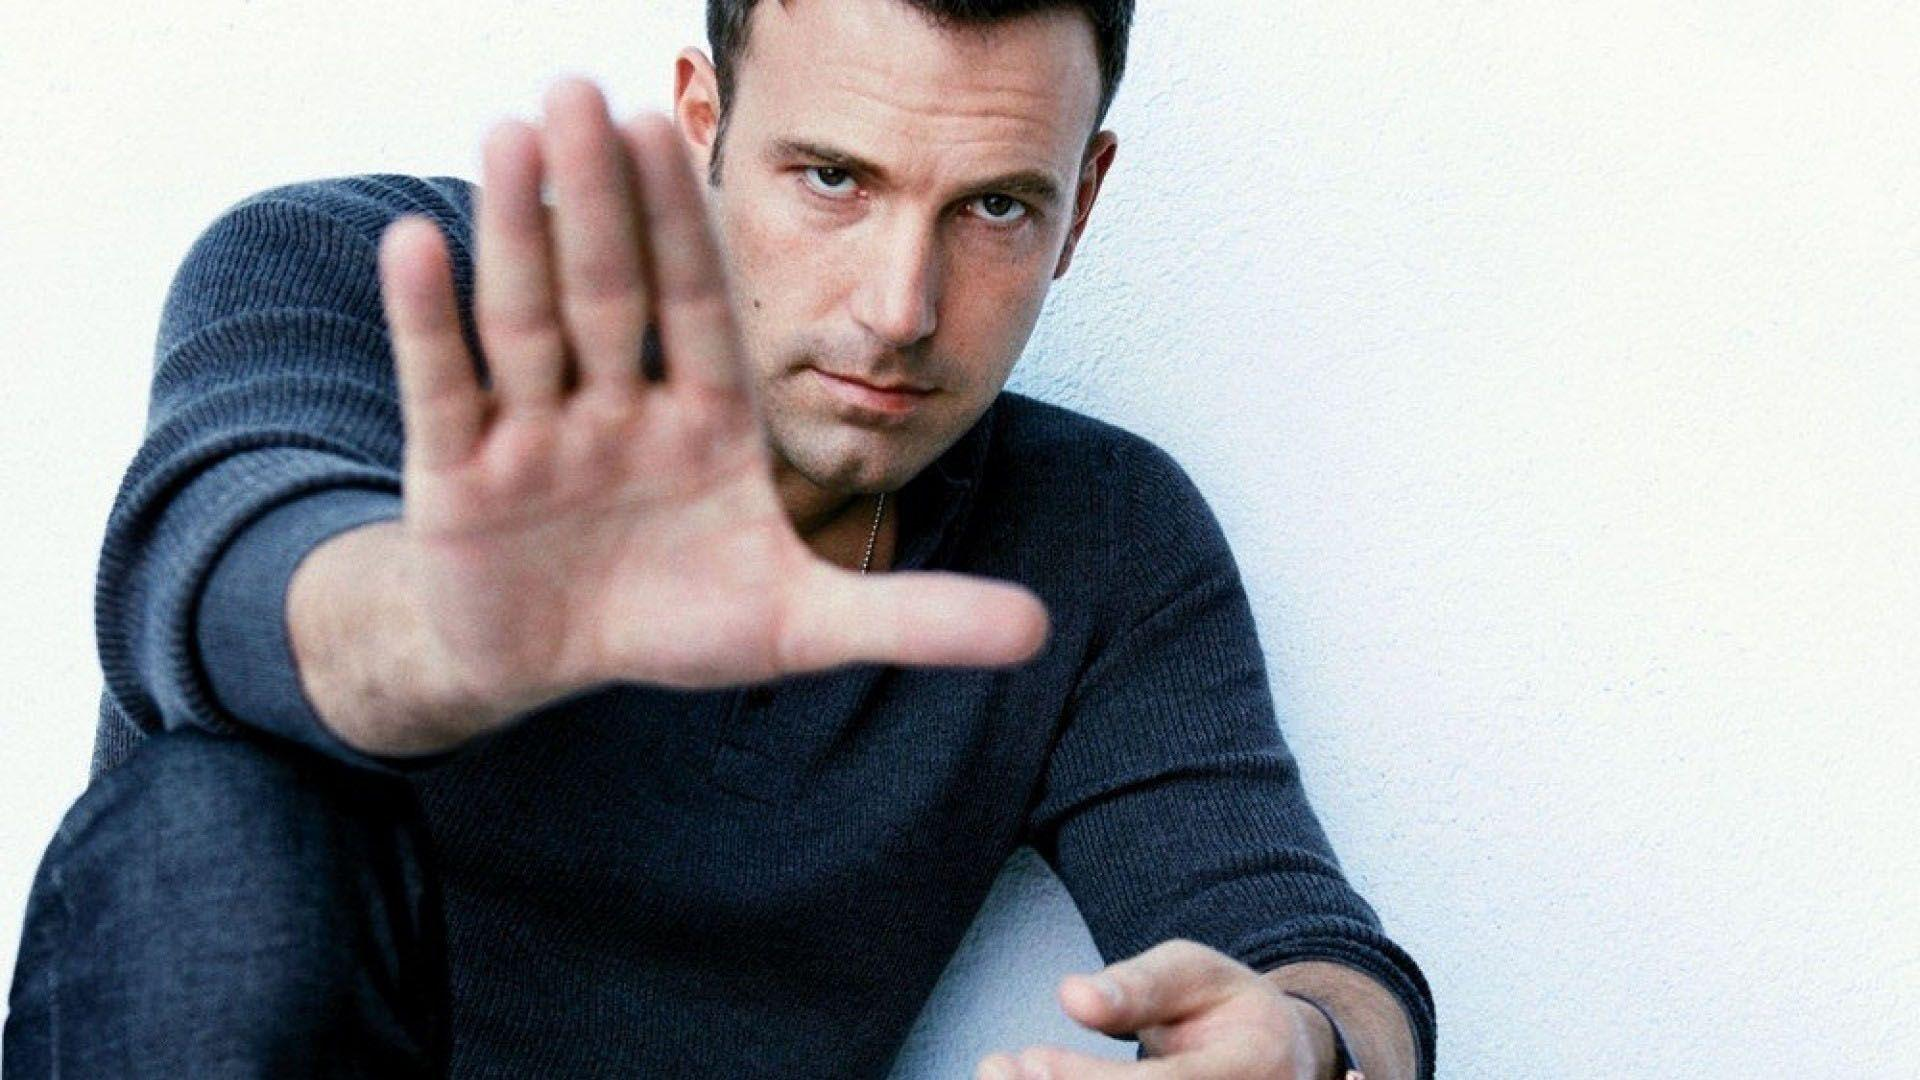 Ben Affleck making hand sign, looking at camera